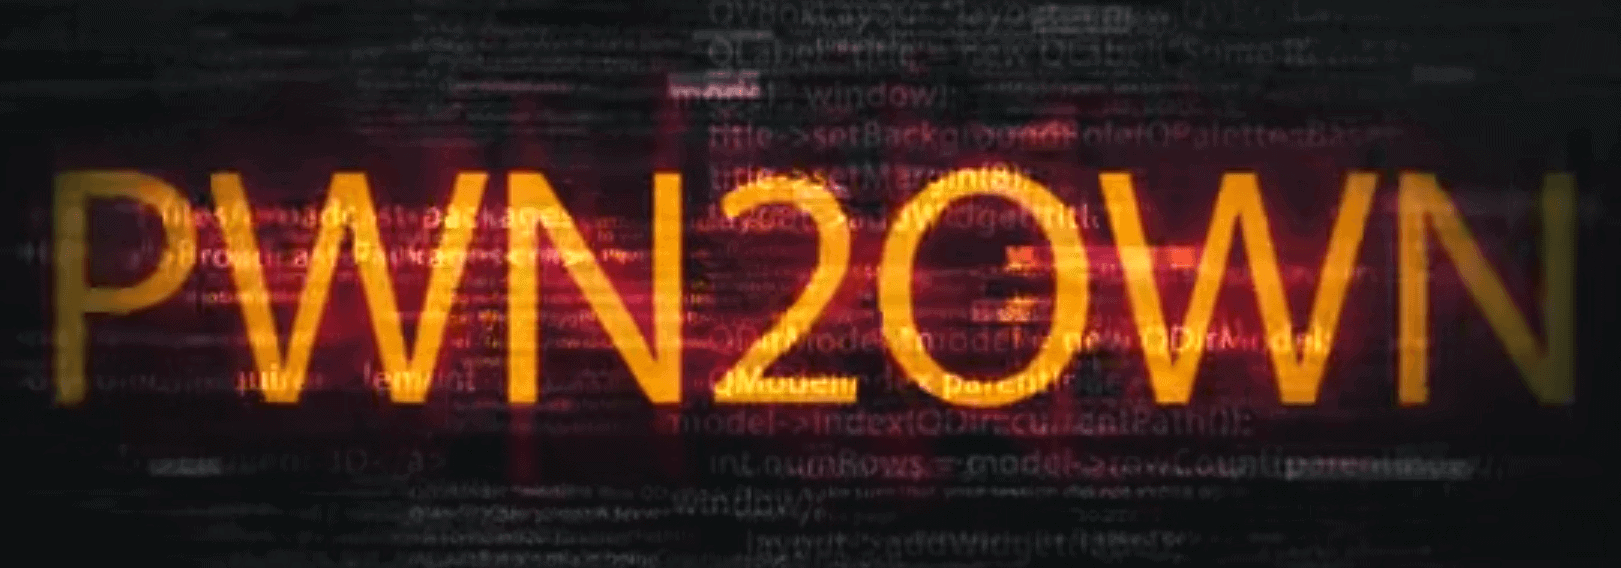 Pwn2Own 2016: Windows, OS X, Chrome, Edge, Safari all hacked